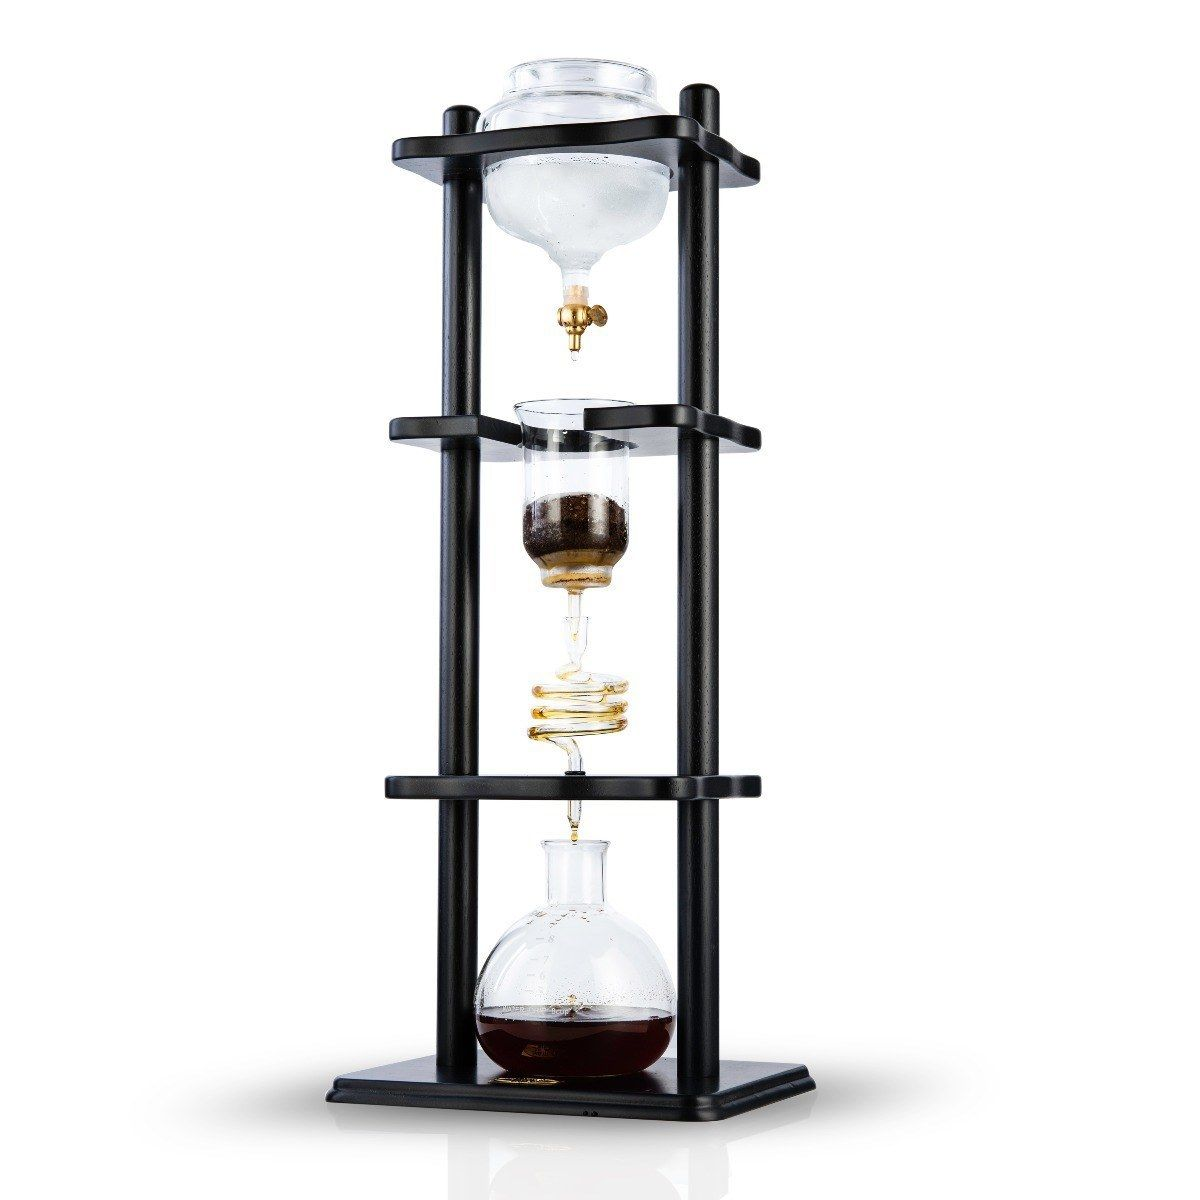 YAMA 6-8 CUP COLD DRIP MAKER STRAIGHT WOOD FRAME (32OZ)